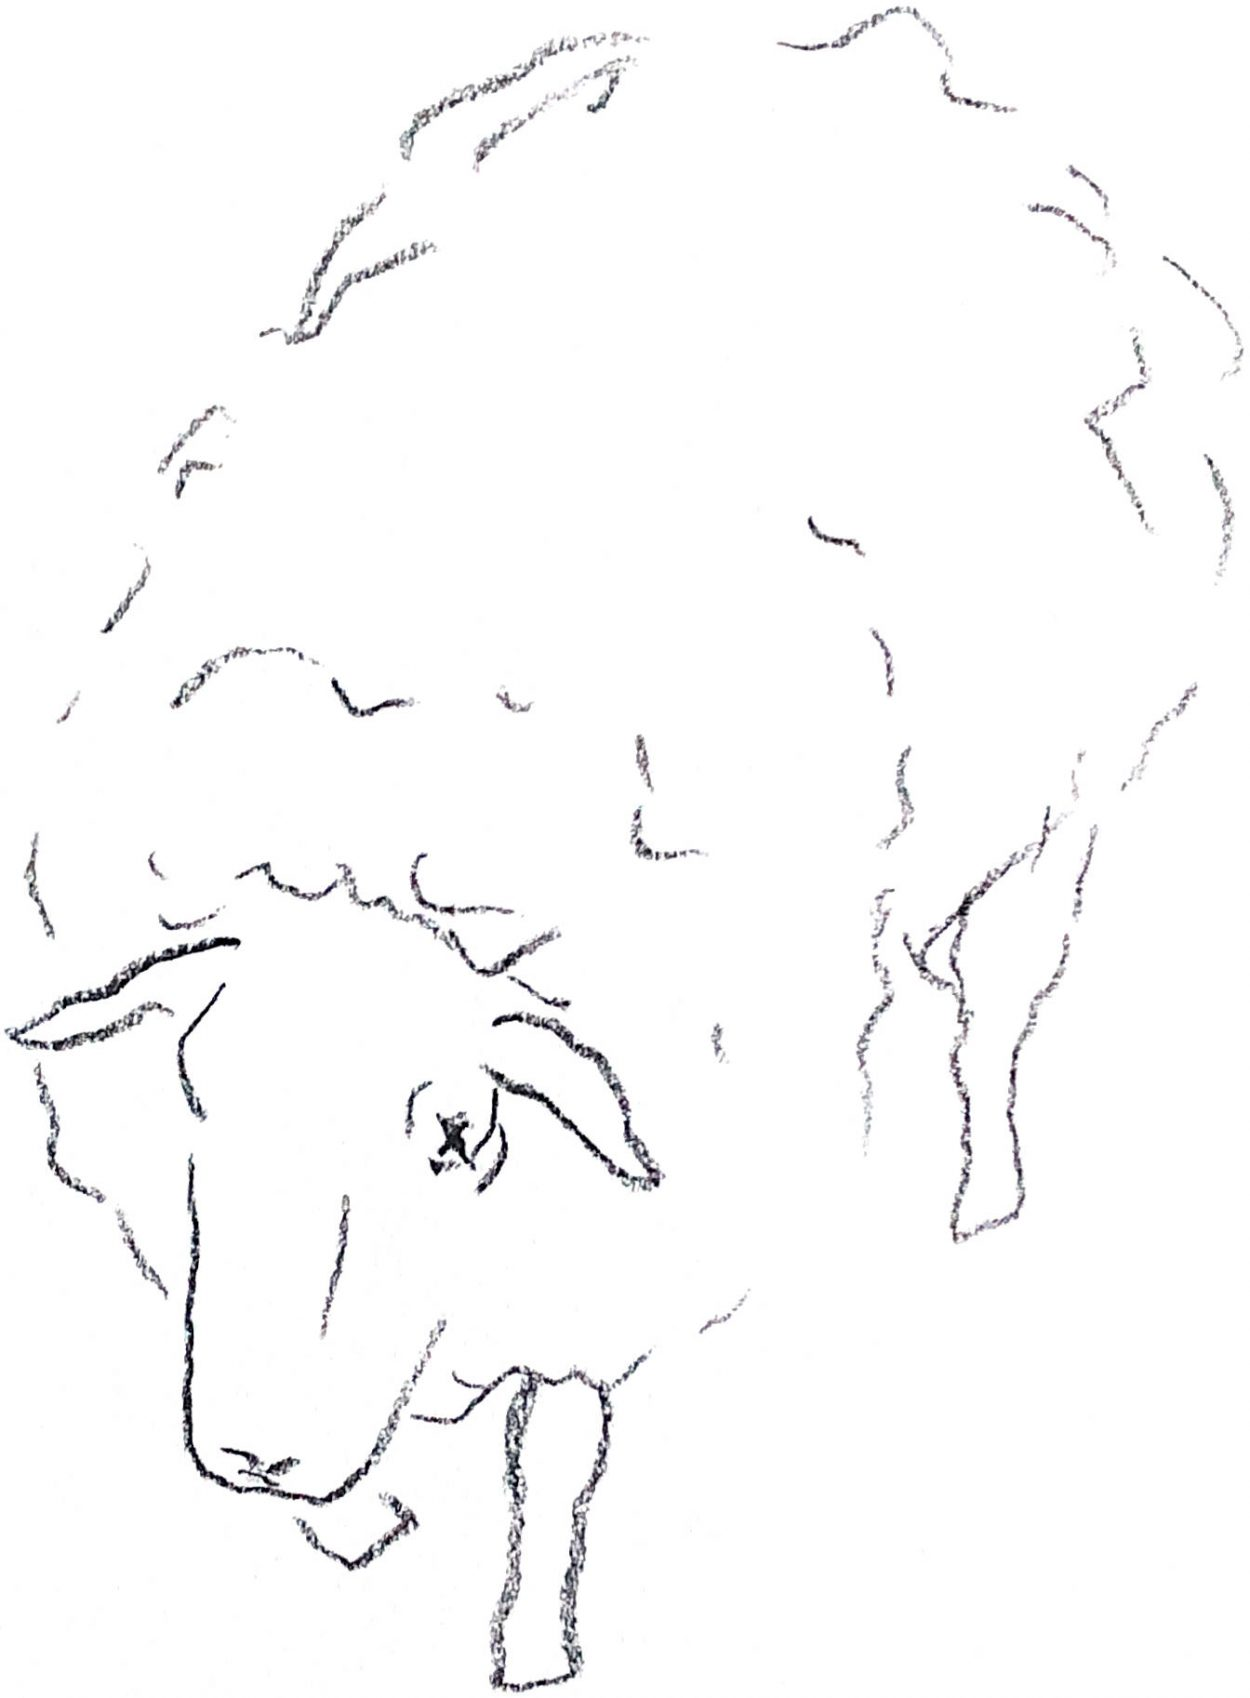 Charcoal sketch of a sheep